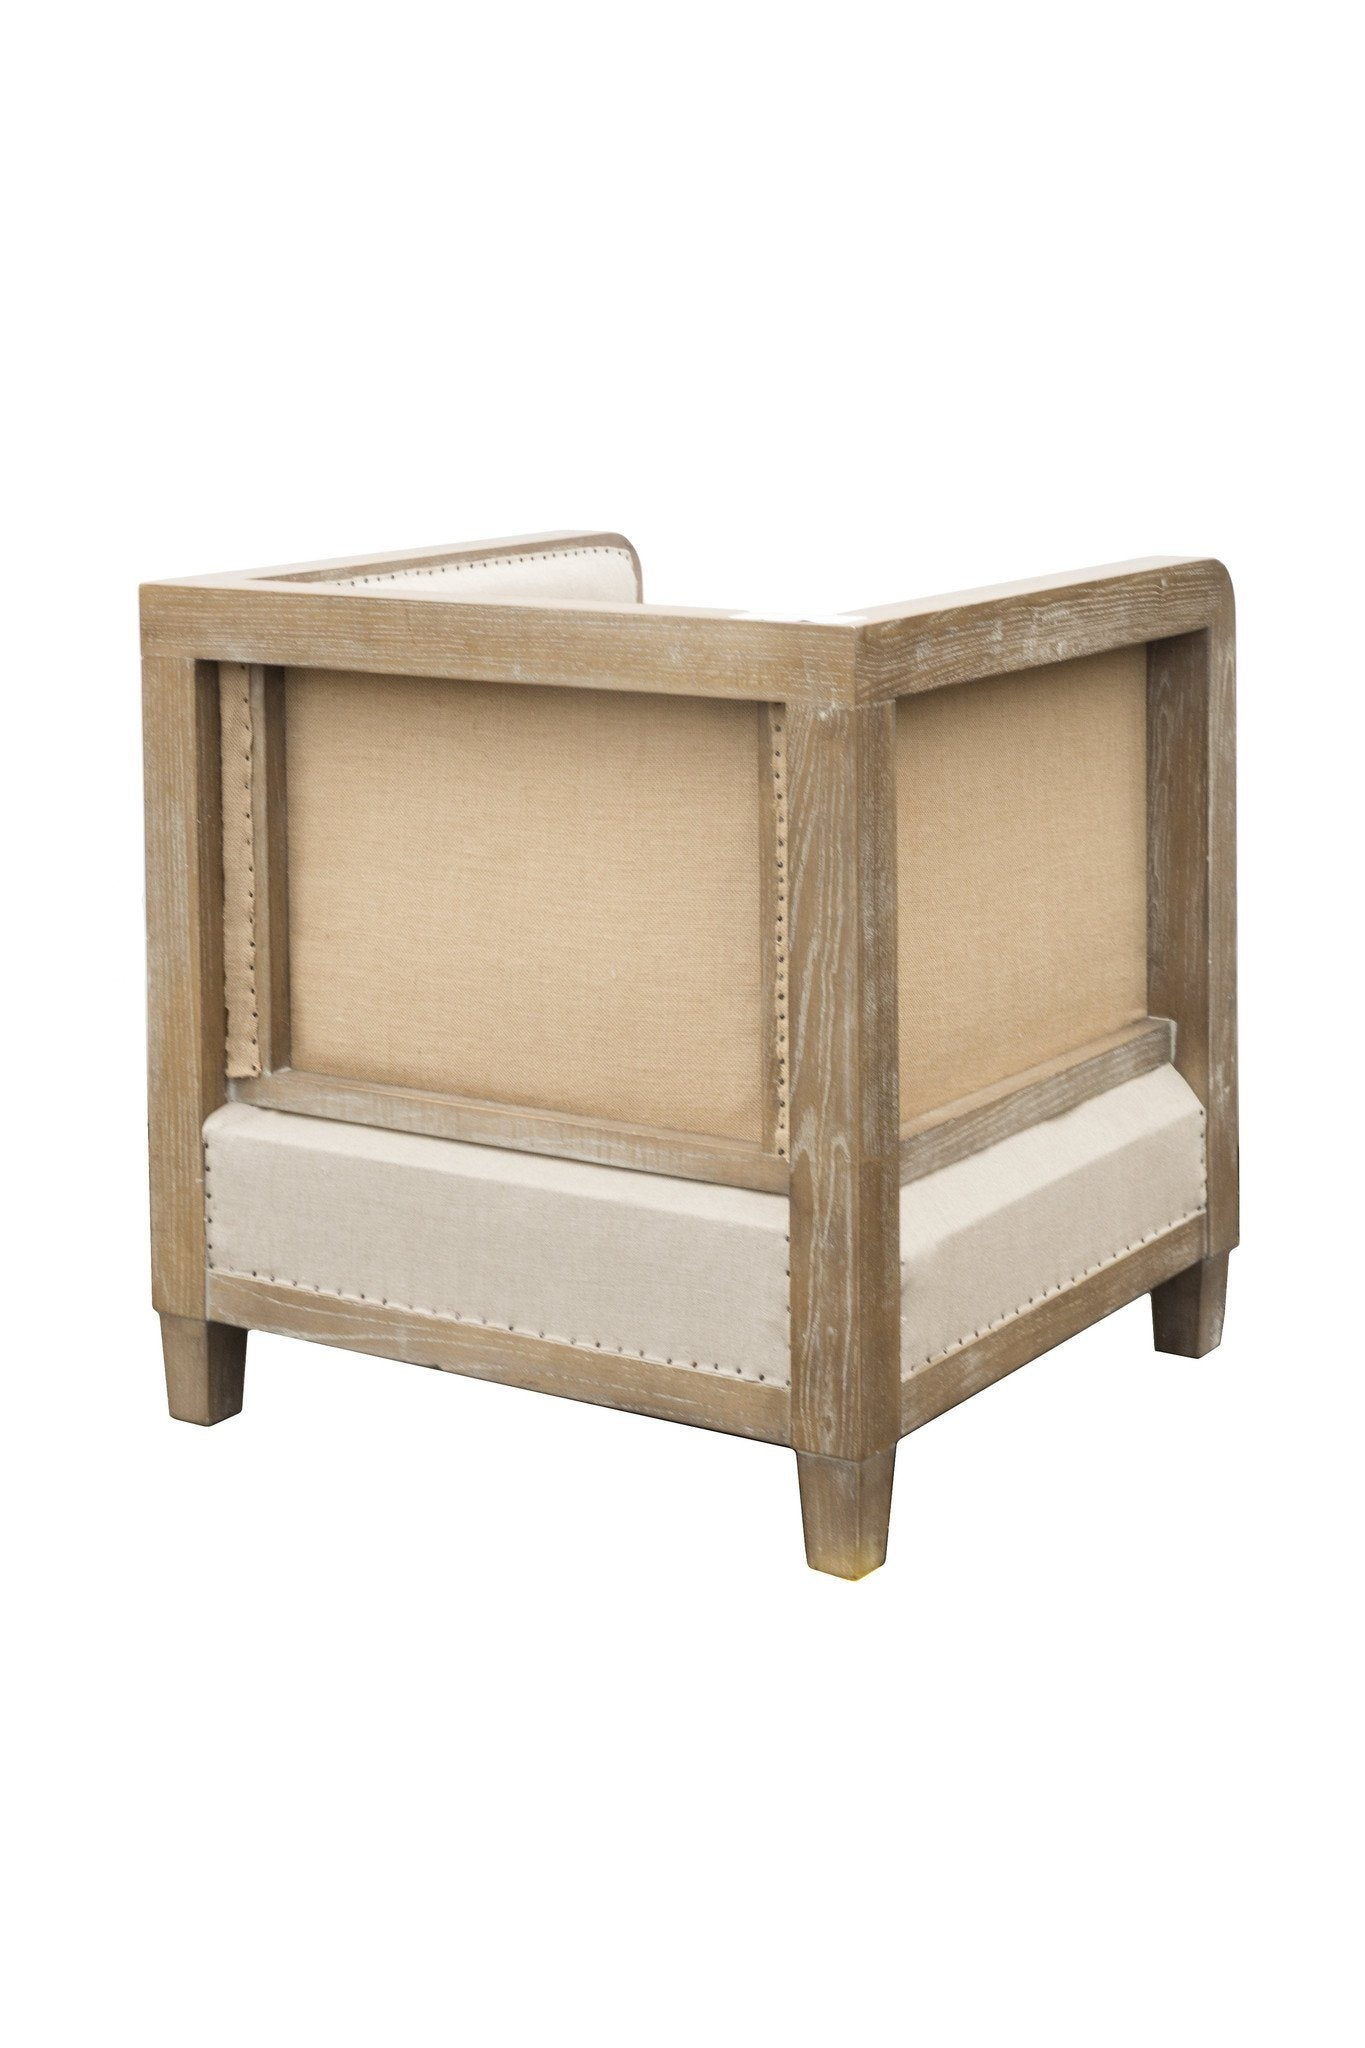 Deconstructed Club Chair - Antique Linen - Calgary Furniture Stores